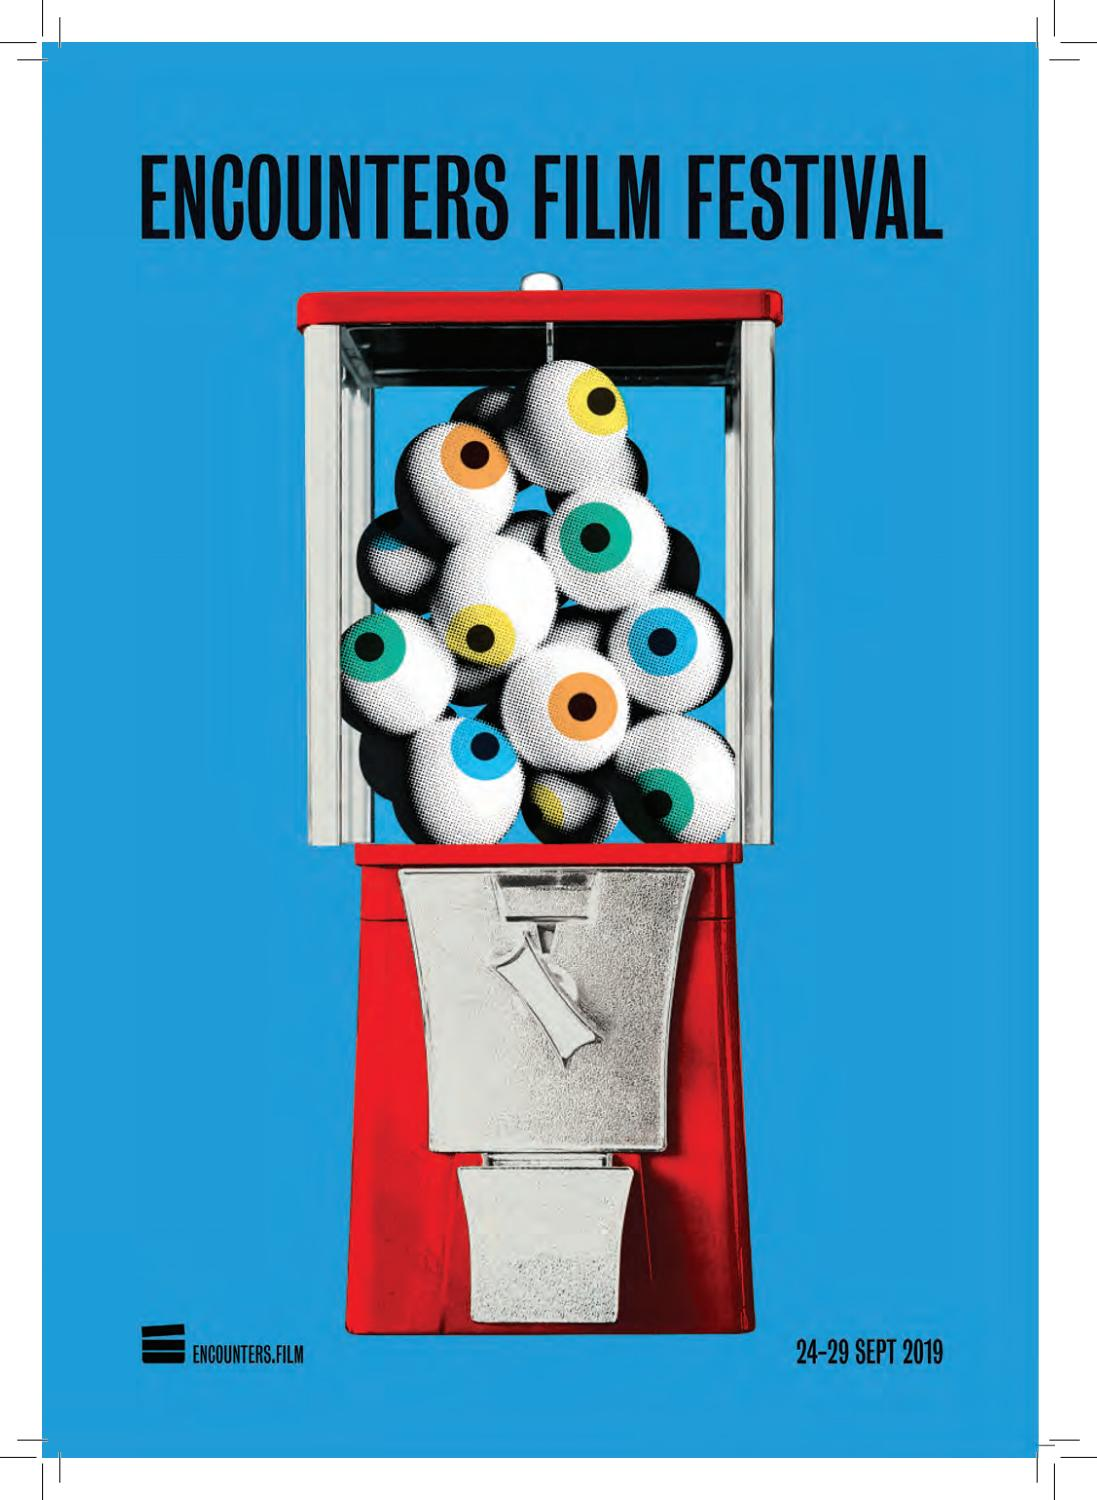 Encounters Film Festival 2019 Catalogue By Encounters Film Festival Issuu